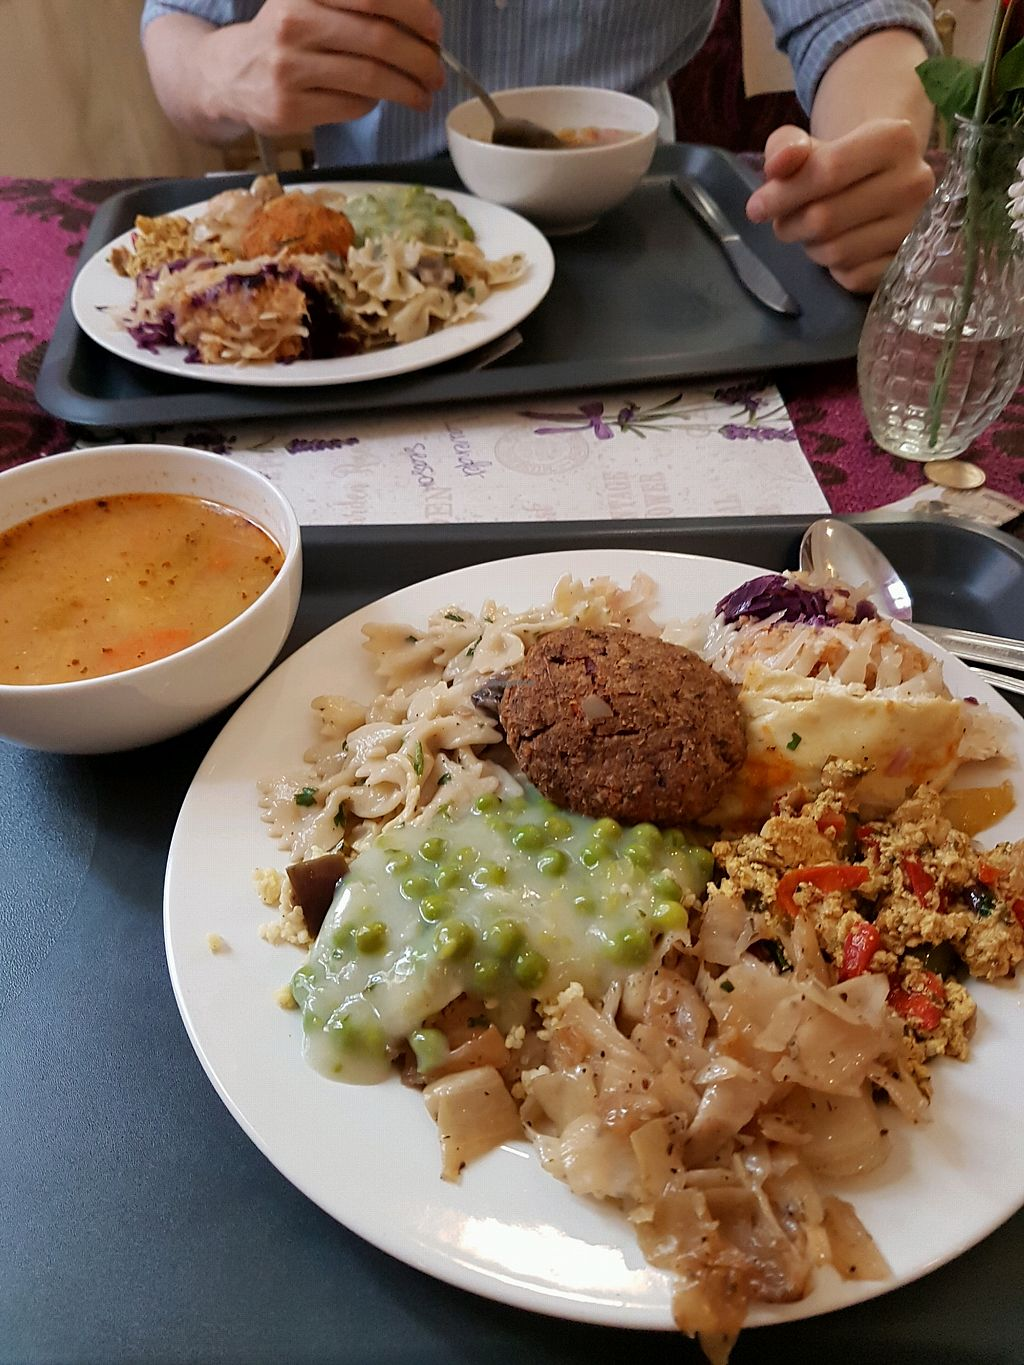 """Photo of Edeni Vegan  by <a href=""""/members/profile/LauraBanana"""">LauraBanana</a> <br/>mixed plate and cabbage soup <br/> April 28, 2018  - <a href='/contact/abuse/image/5490/392050'>Report</a>"""